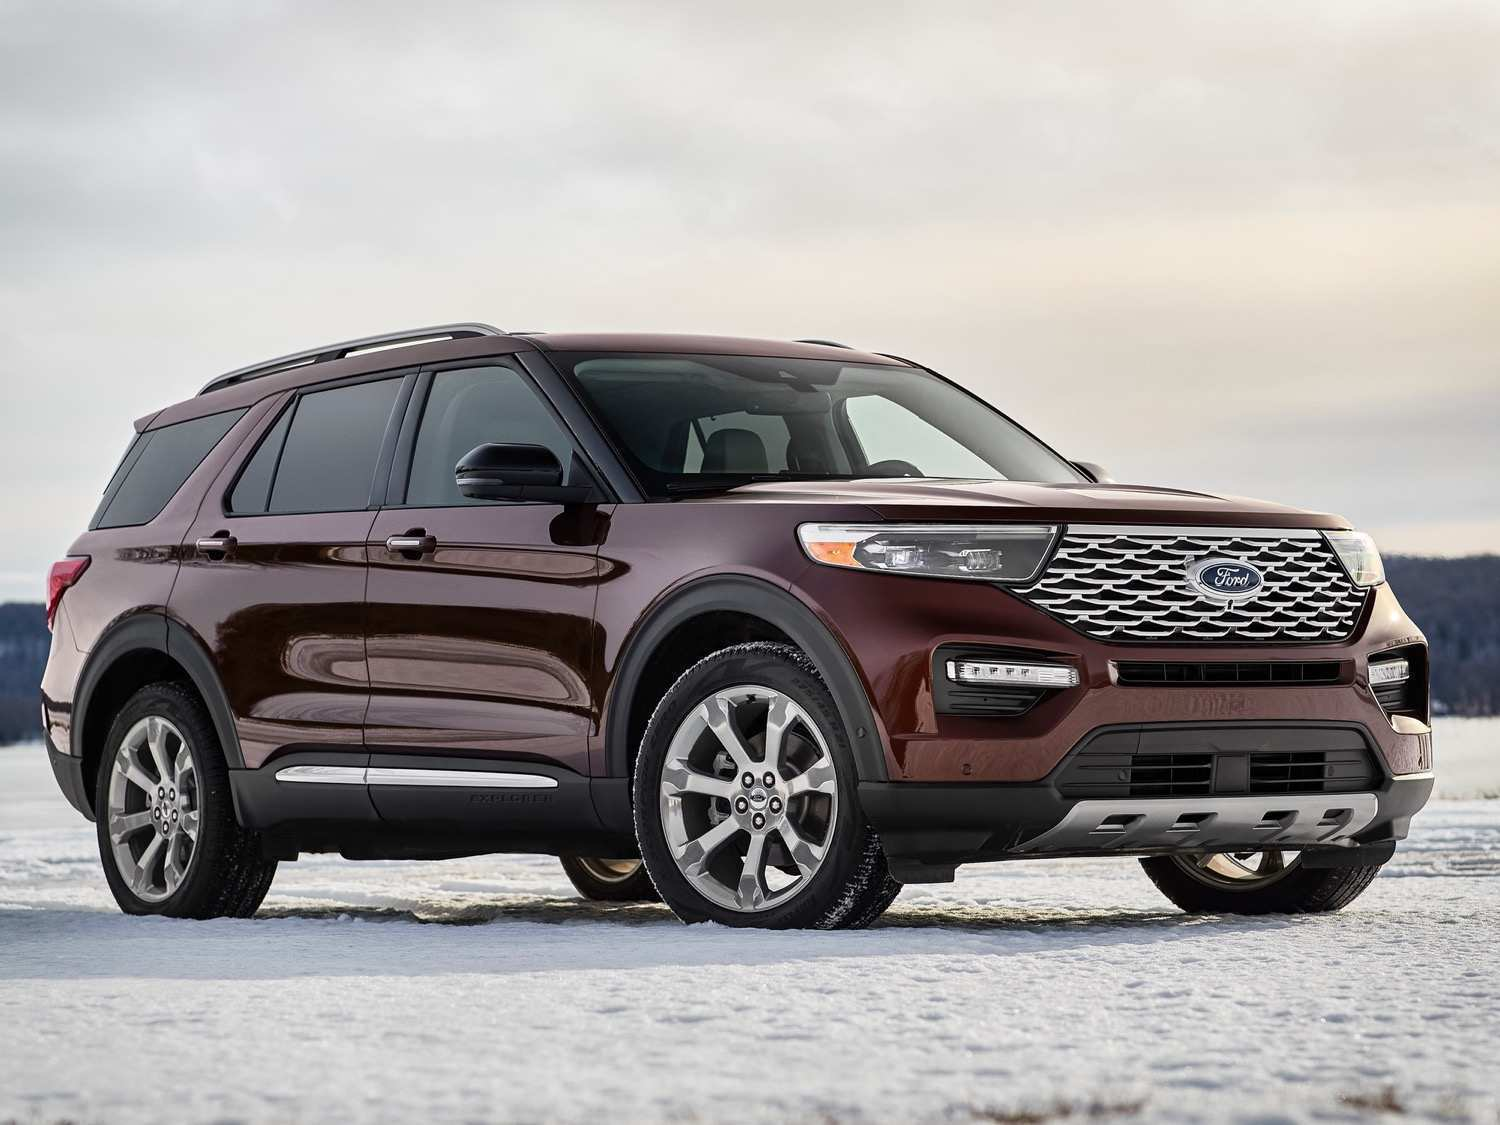 18 All New 2020 Ford Explorer Design Specs for 2020 Ford Explorer Design